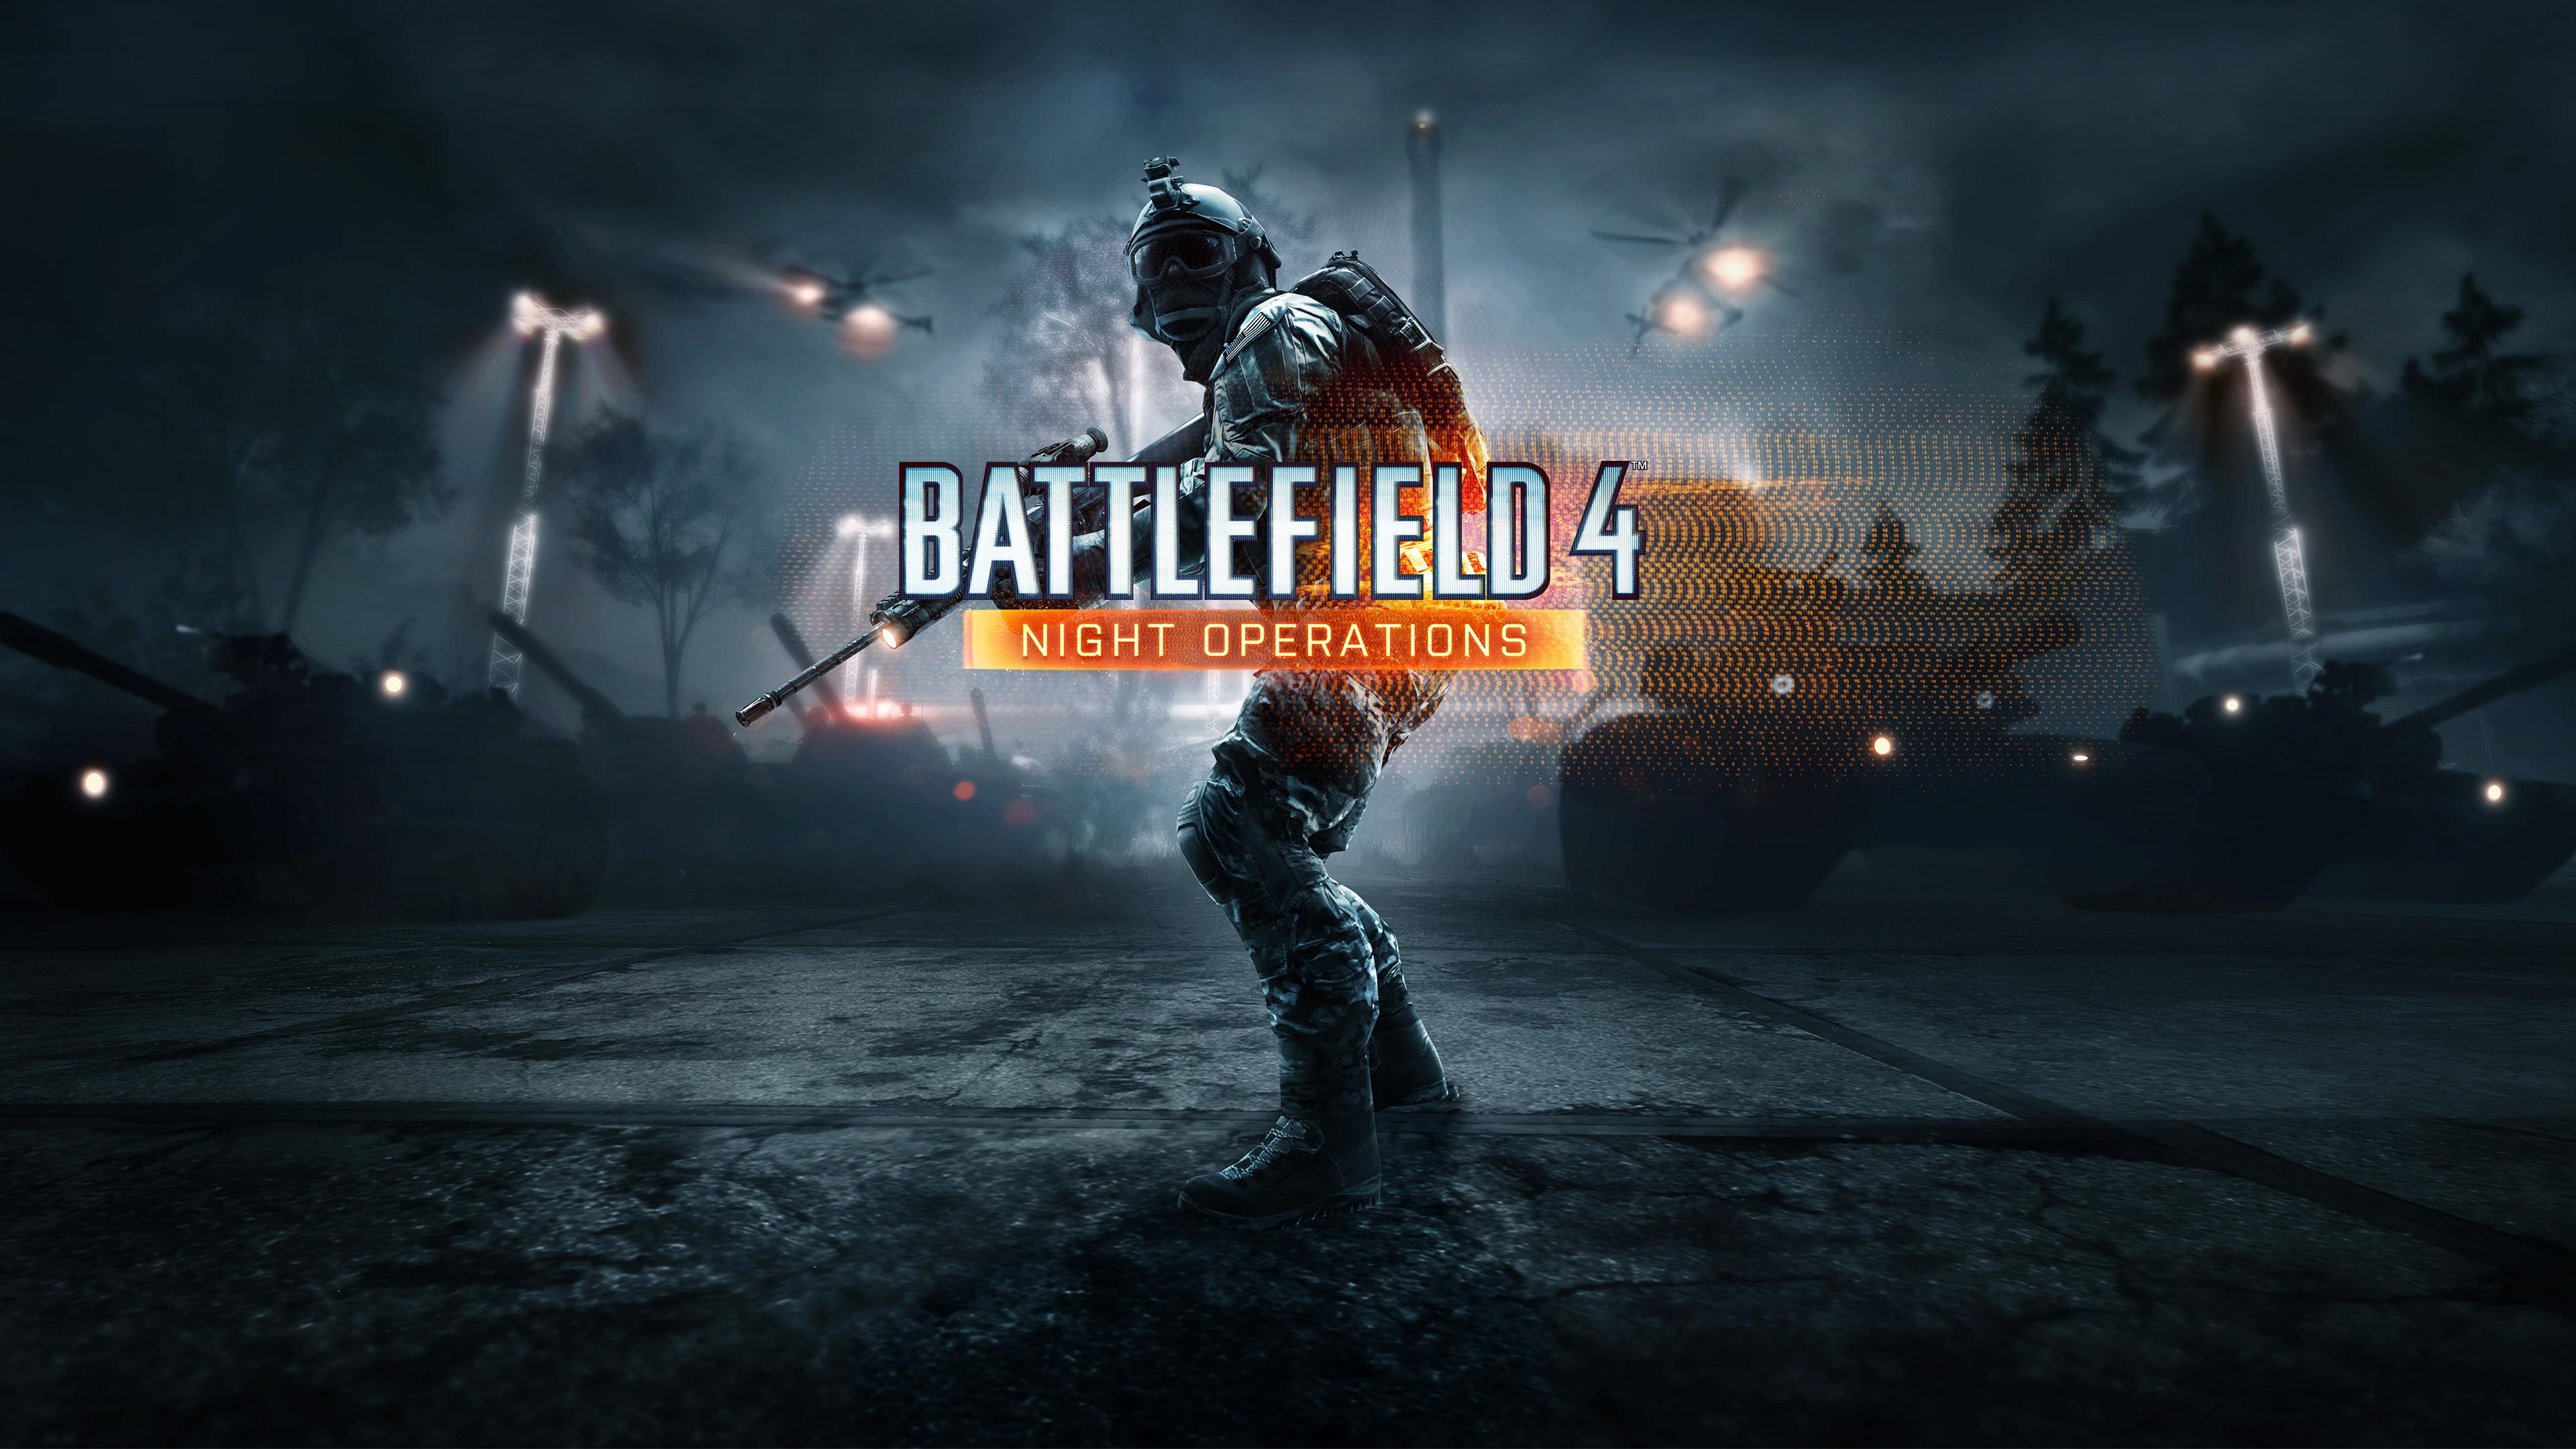 Battlefield 4 Game - Battlefield 4 Wallpaper 4k - HD Wallpaper